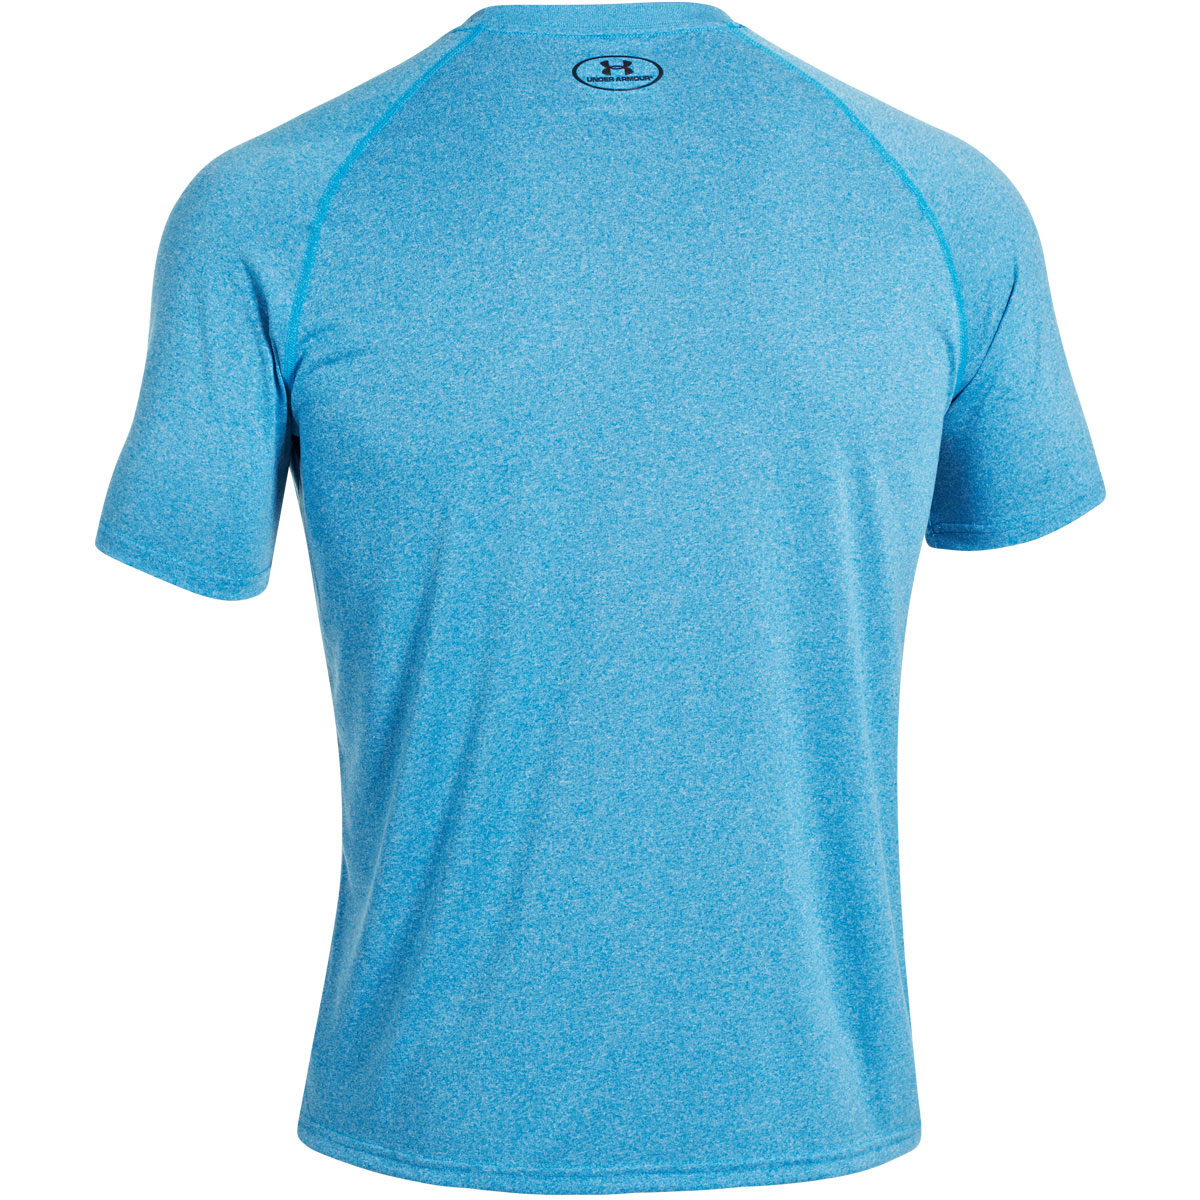 Under-Armour-Mens-UA-Tech-SS-T-Shirt-HeatGear-Training-31-OFF-RRP thumbnail 44